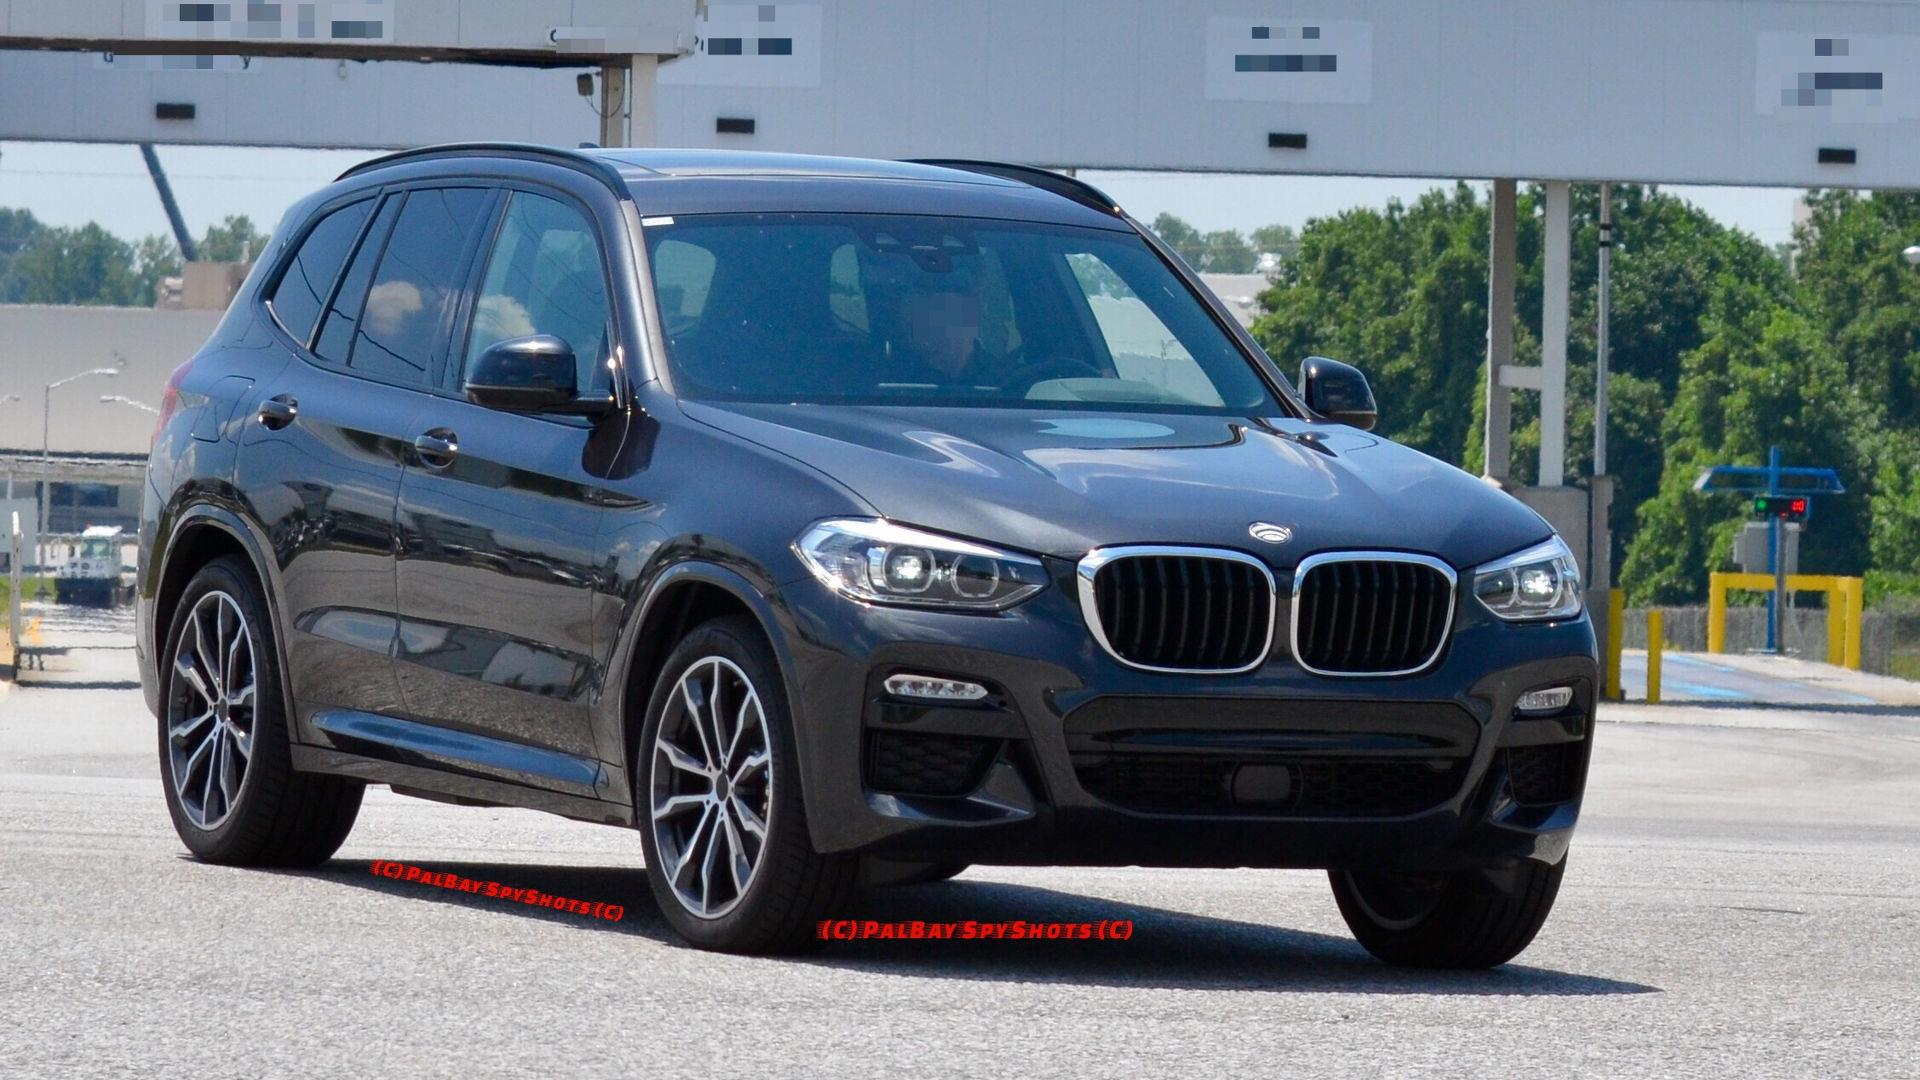 2018 bmw x3 spied with m sport pack in real world. Black Bedroom Furniture Sets. Home Design Ideas